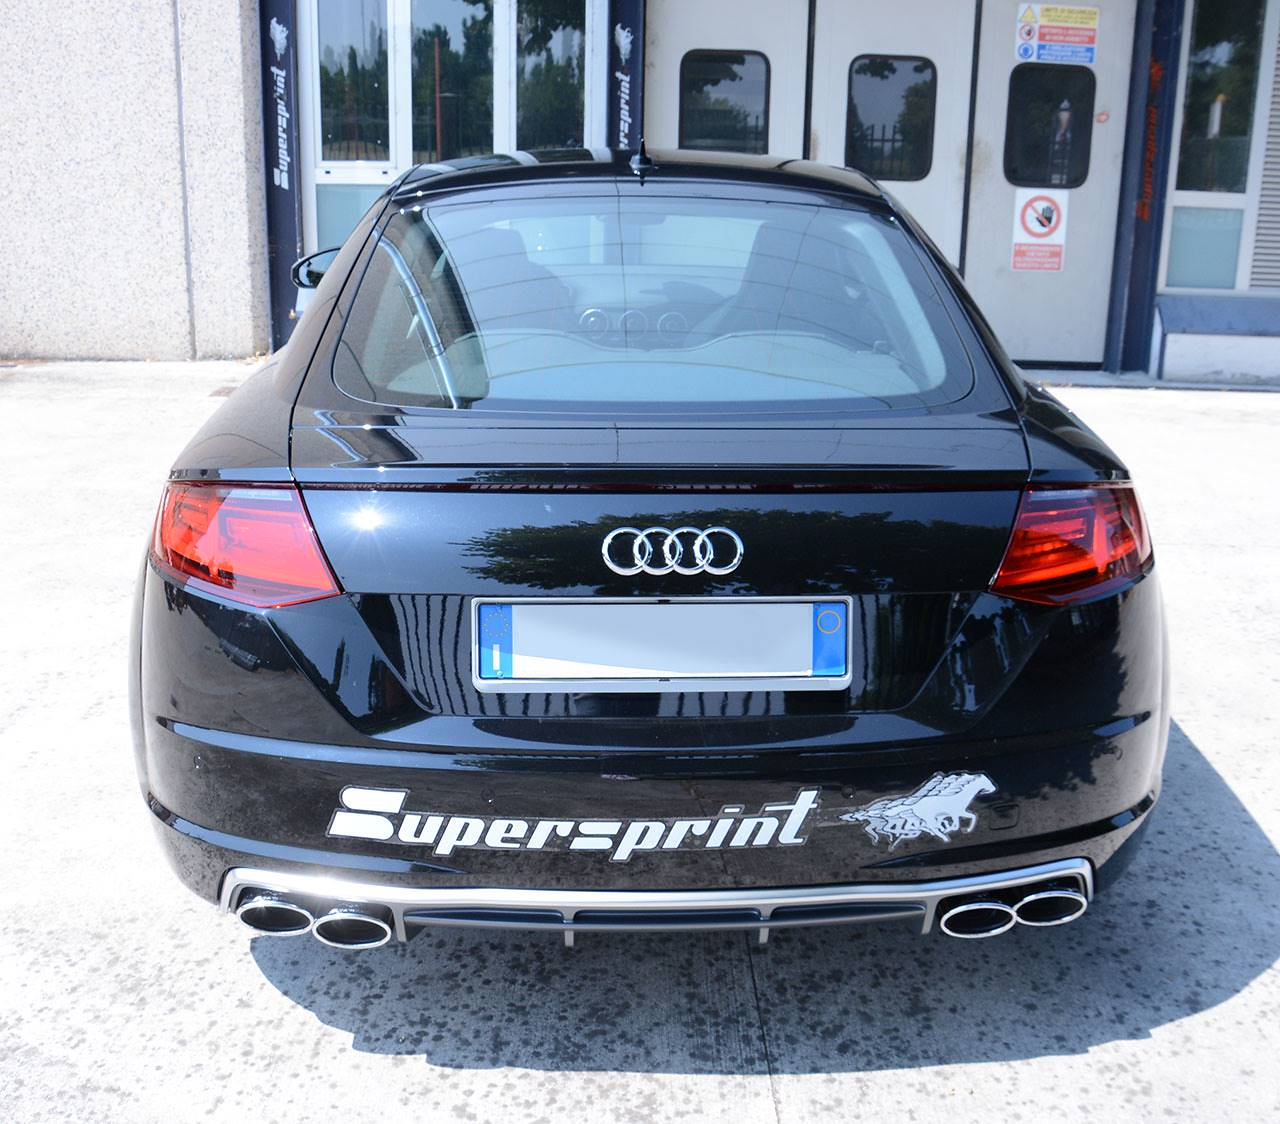 Supersprint exhaust for Audi TT Mk3 2.0 TFSI with TT-S diffuser and 120x80mm oval tips